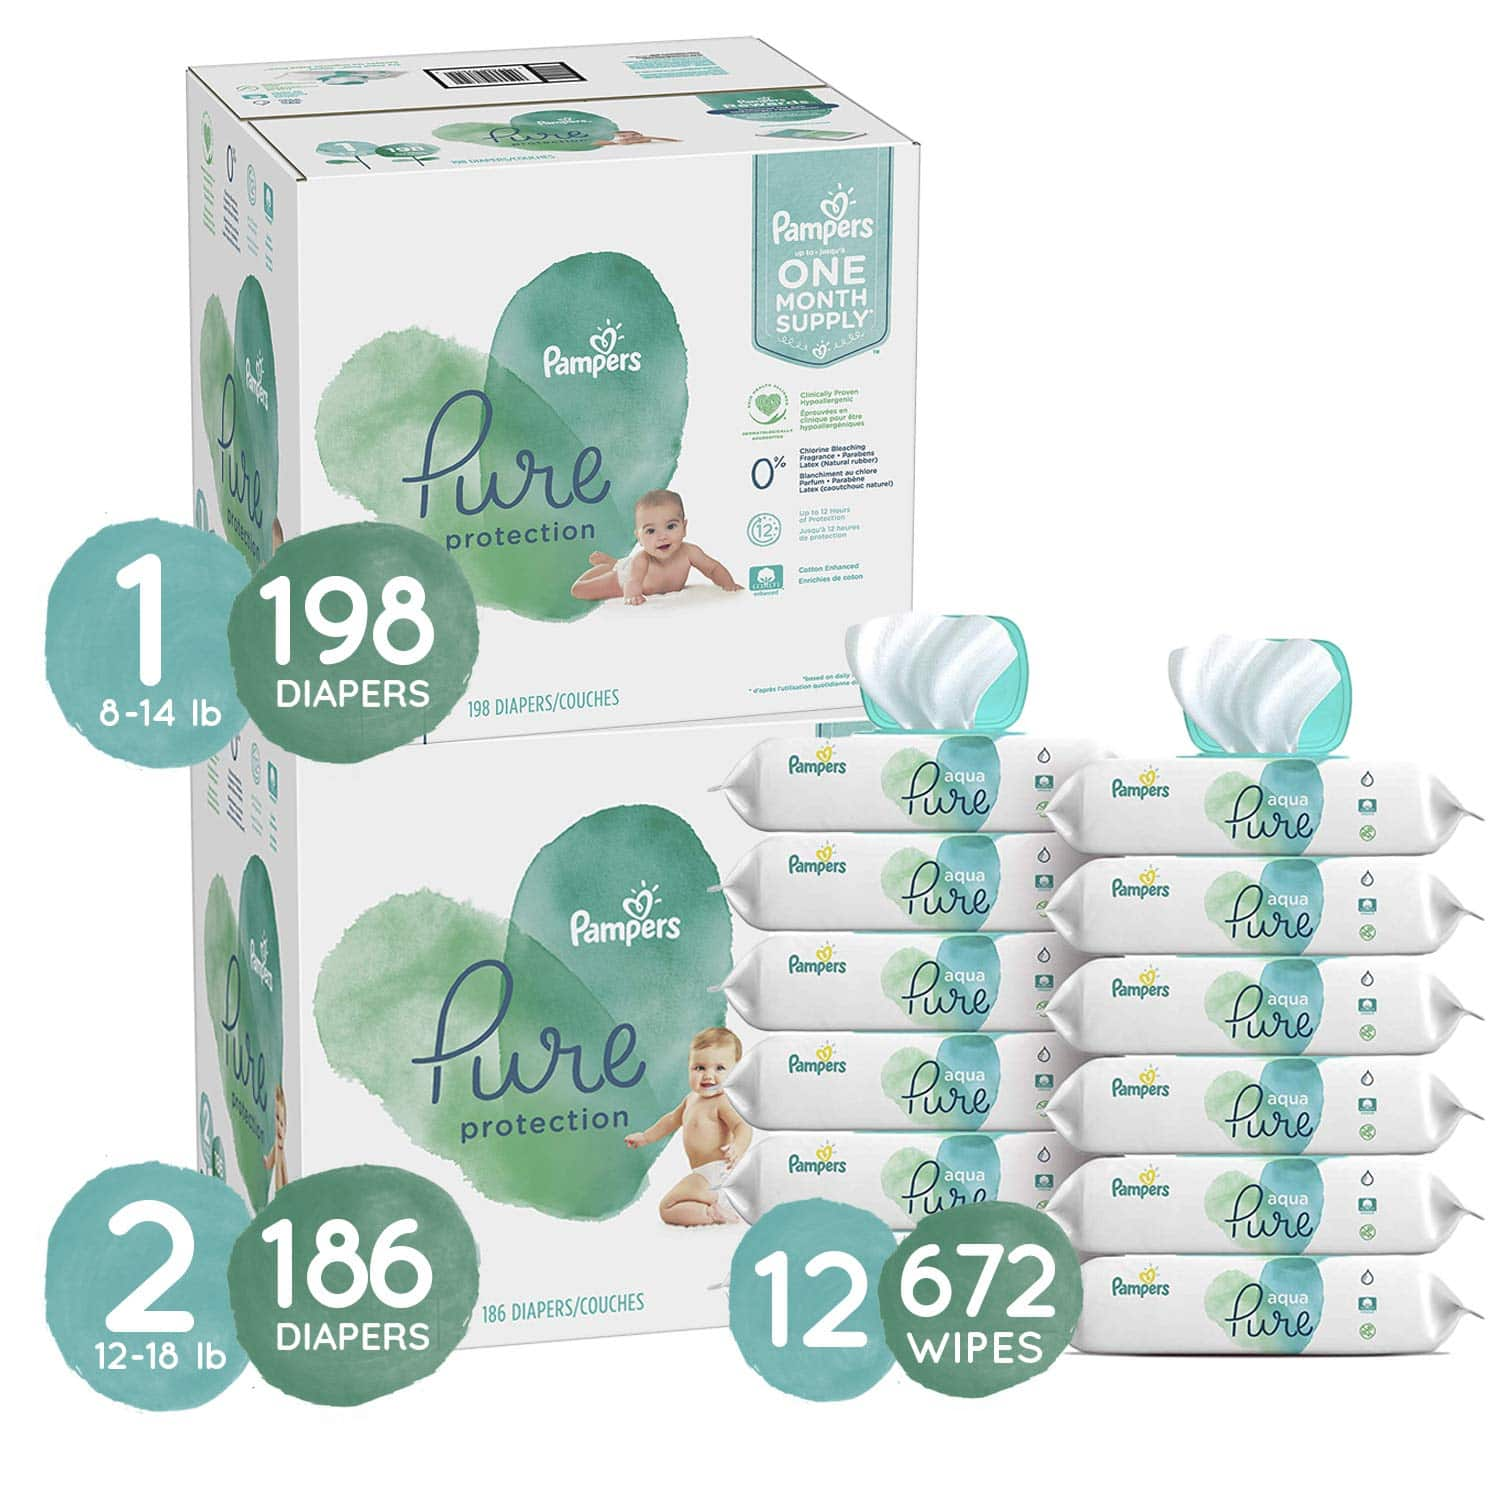 Pampers Pure Diapers and Wipes Bundle - Size 1 198-Ct.   Size 2 186-Ct.   12-Pkgs. Aqua Pure Wipes (672 Wipes) $112.50 AC - Amazon